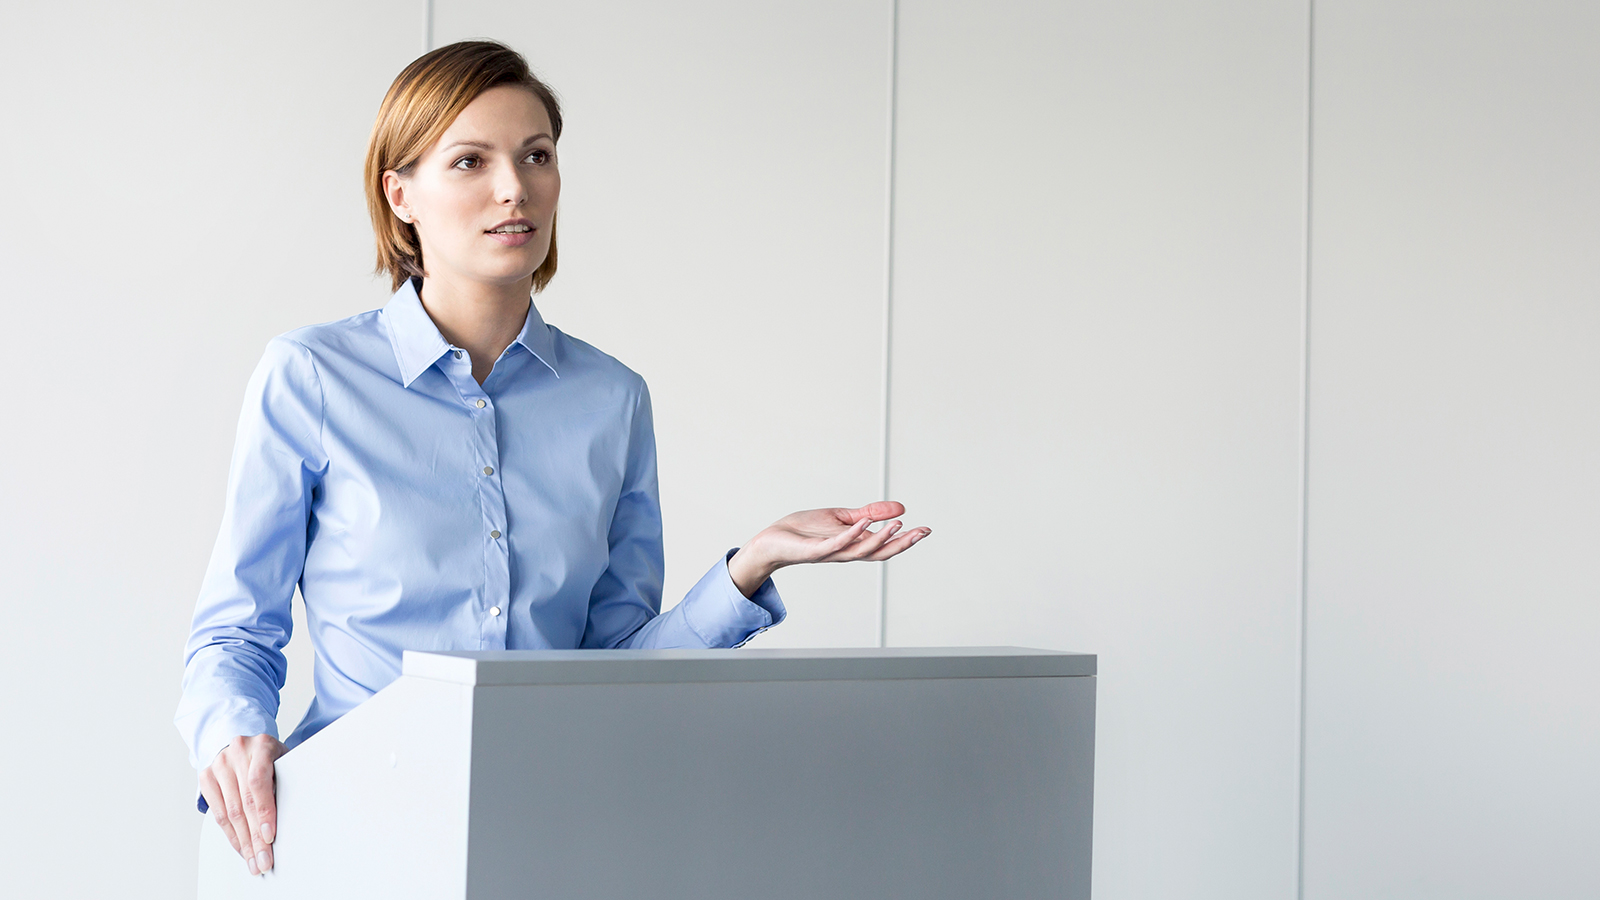 The only way to become a better public speaker as an introvert